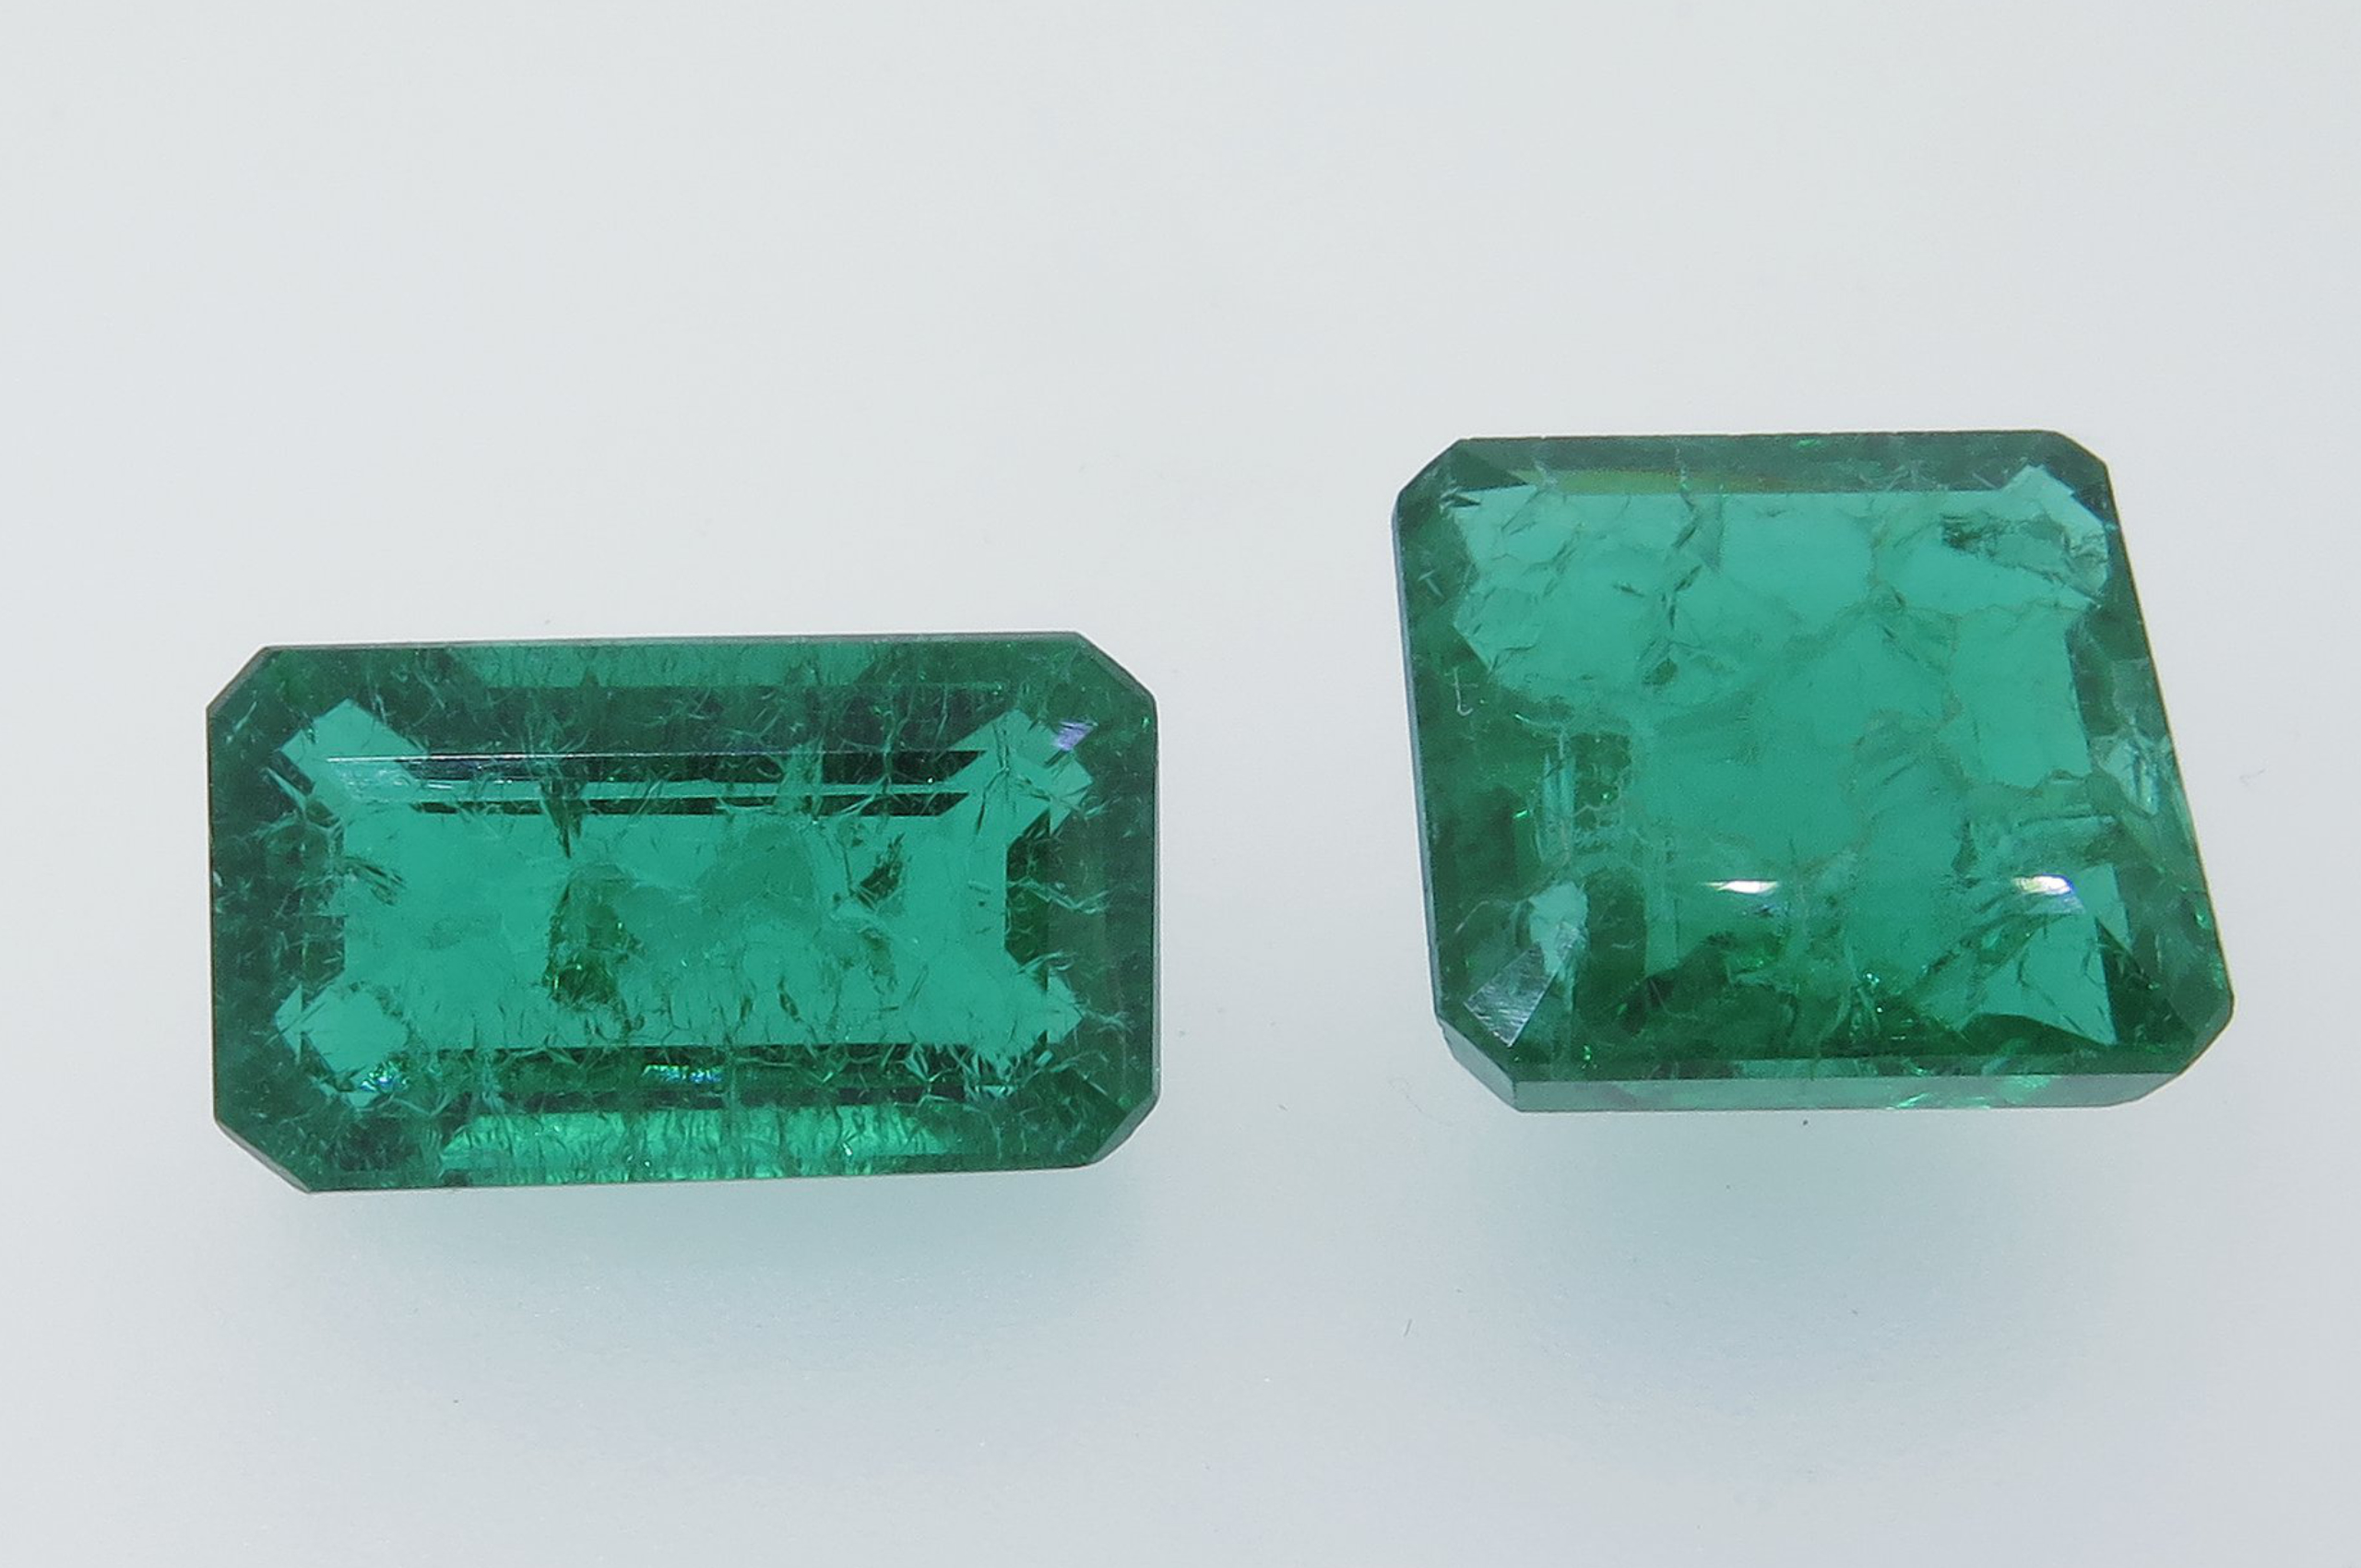 Synthetic glass with honeycomb cracks filled with oil, imitation of Emerald. Photo by Liviano Soprani